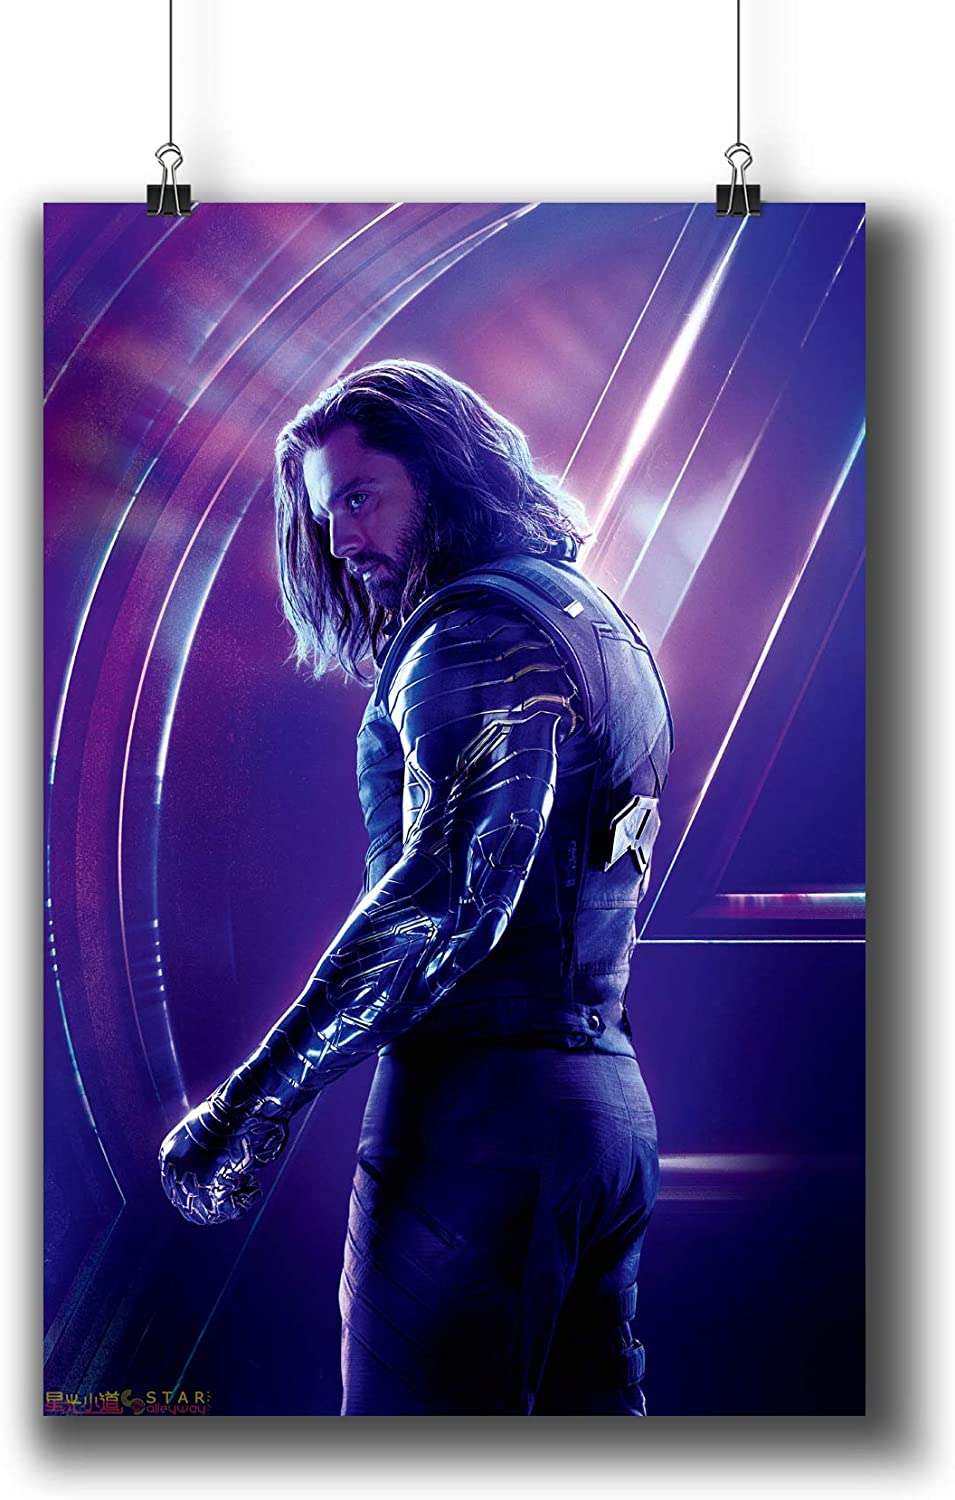 Avengers: Infinity War (2018) Movie Poster Small Prints 183-207 Winter Soldier,Wall Art Decor for Dorm Bedroom Living Room (A3|11x17inch|29x42cm)